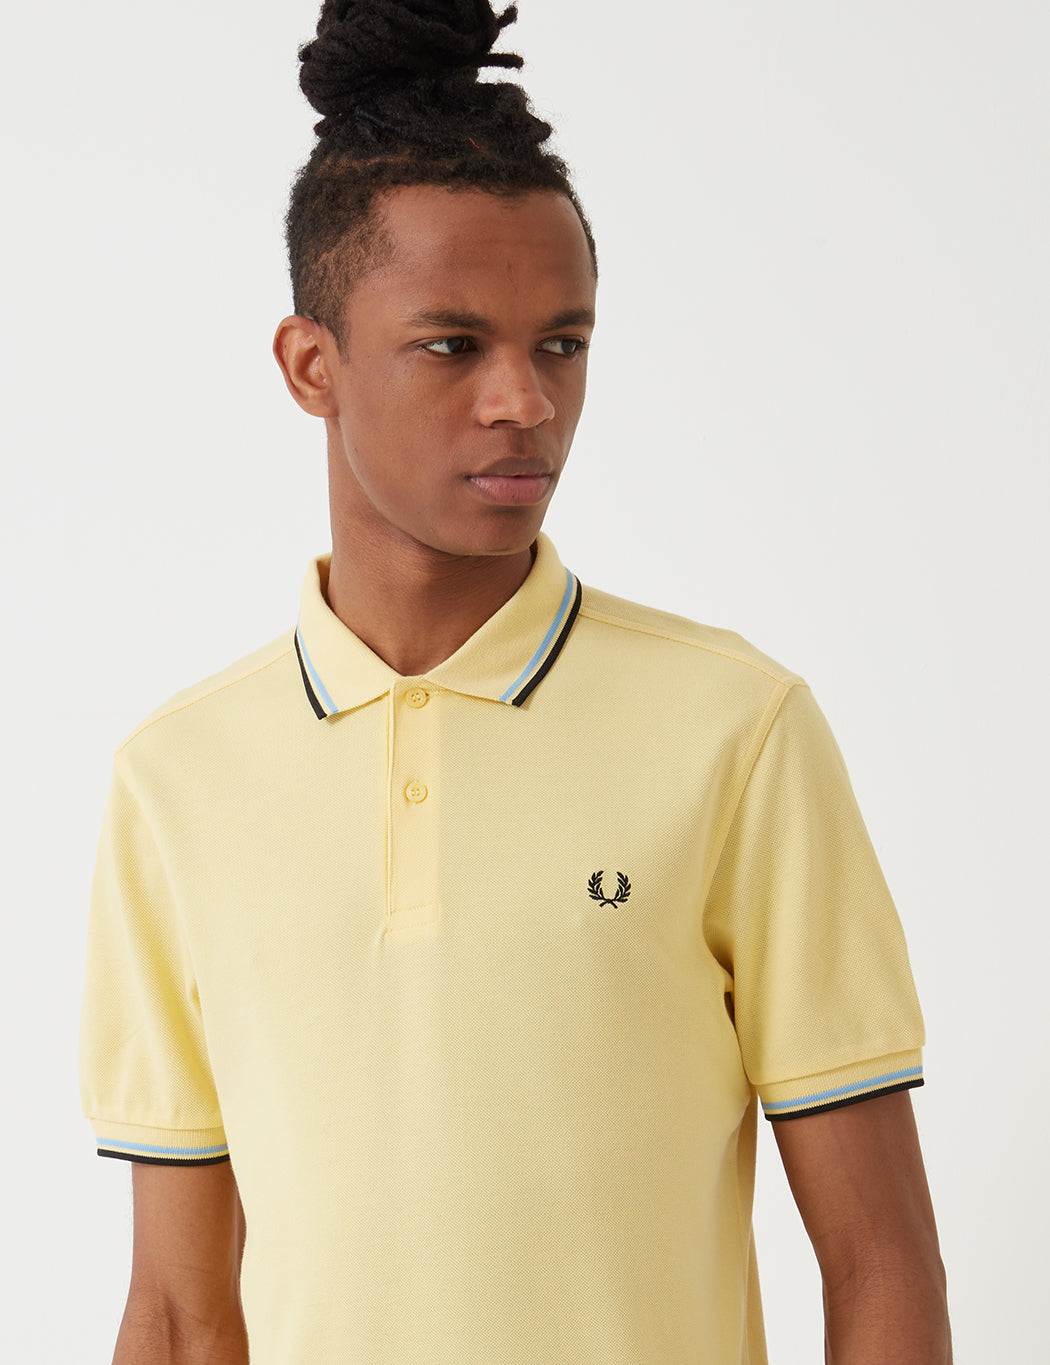 45e2f6be3 Fred Perry Twin Tipped Polo Shirt - Soft Yellow/Summer Blue/Black